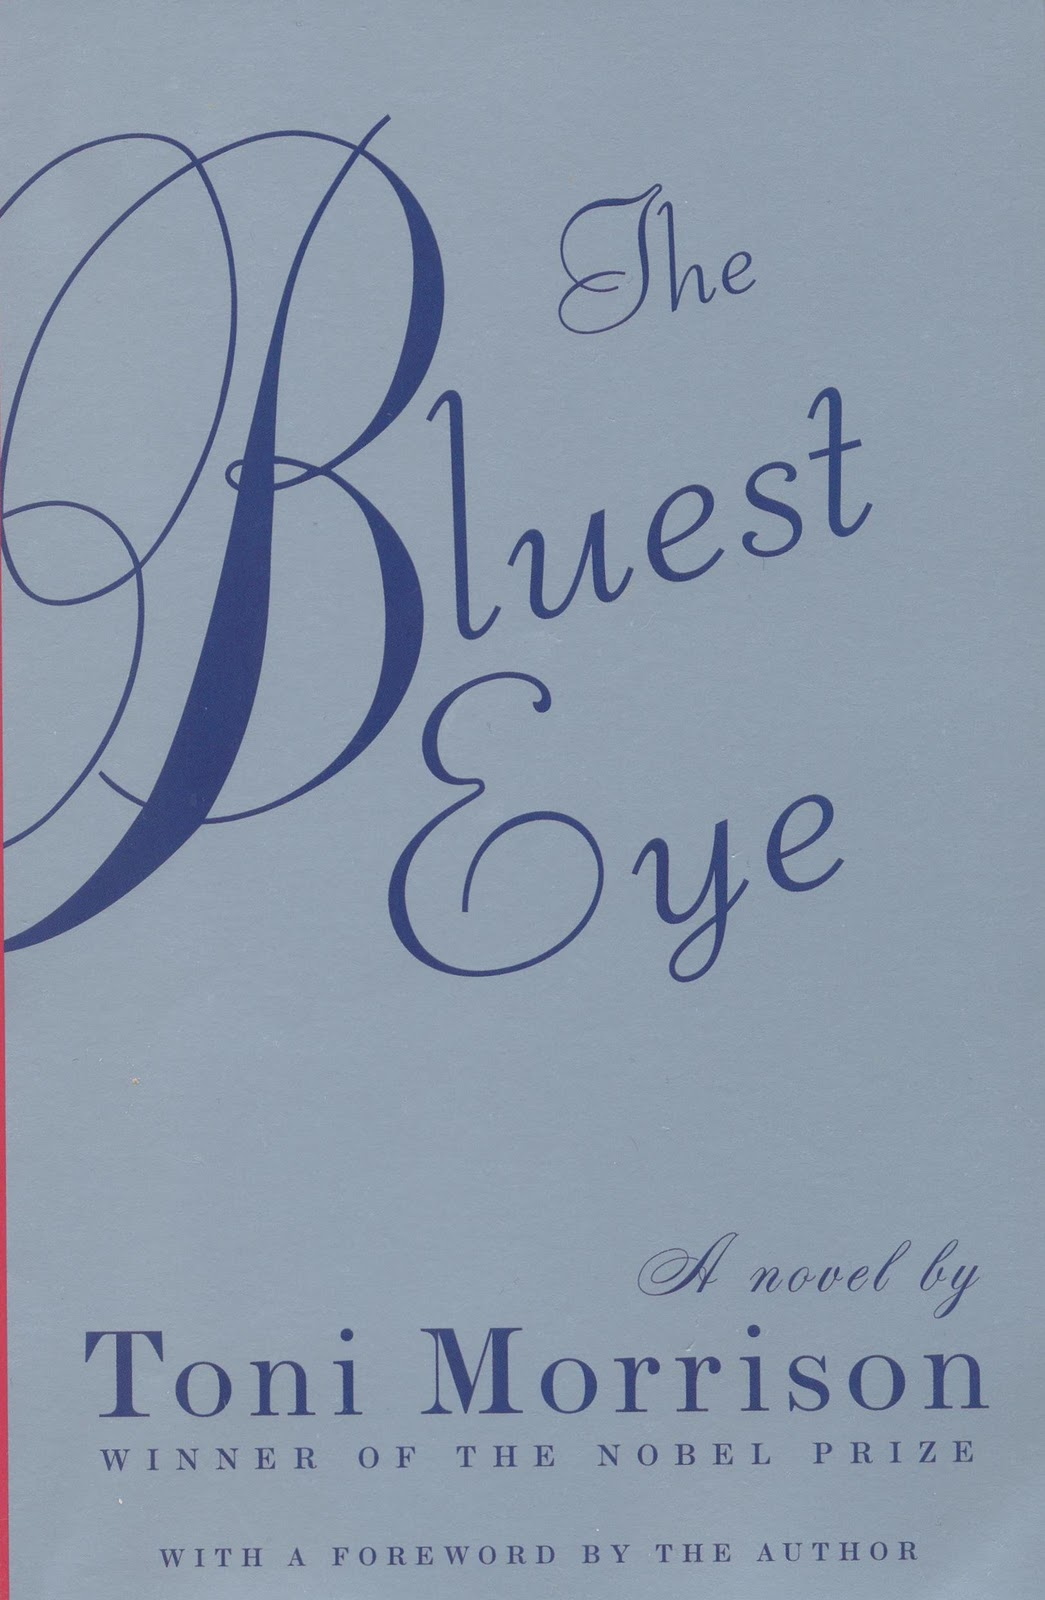 the bluest eye by tony morrison Toni morisson's the bluest eye: the bluest eye is about the life of the breedlove family who resides in lorain, ohio, in the late 1930s this family consists of the mother pauline, the father cholly, the son sammy, and the daughter pecola.